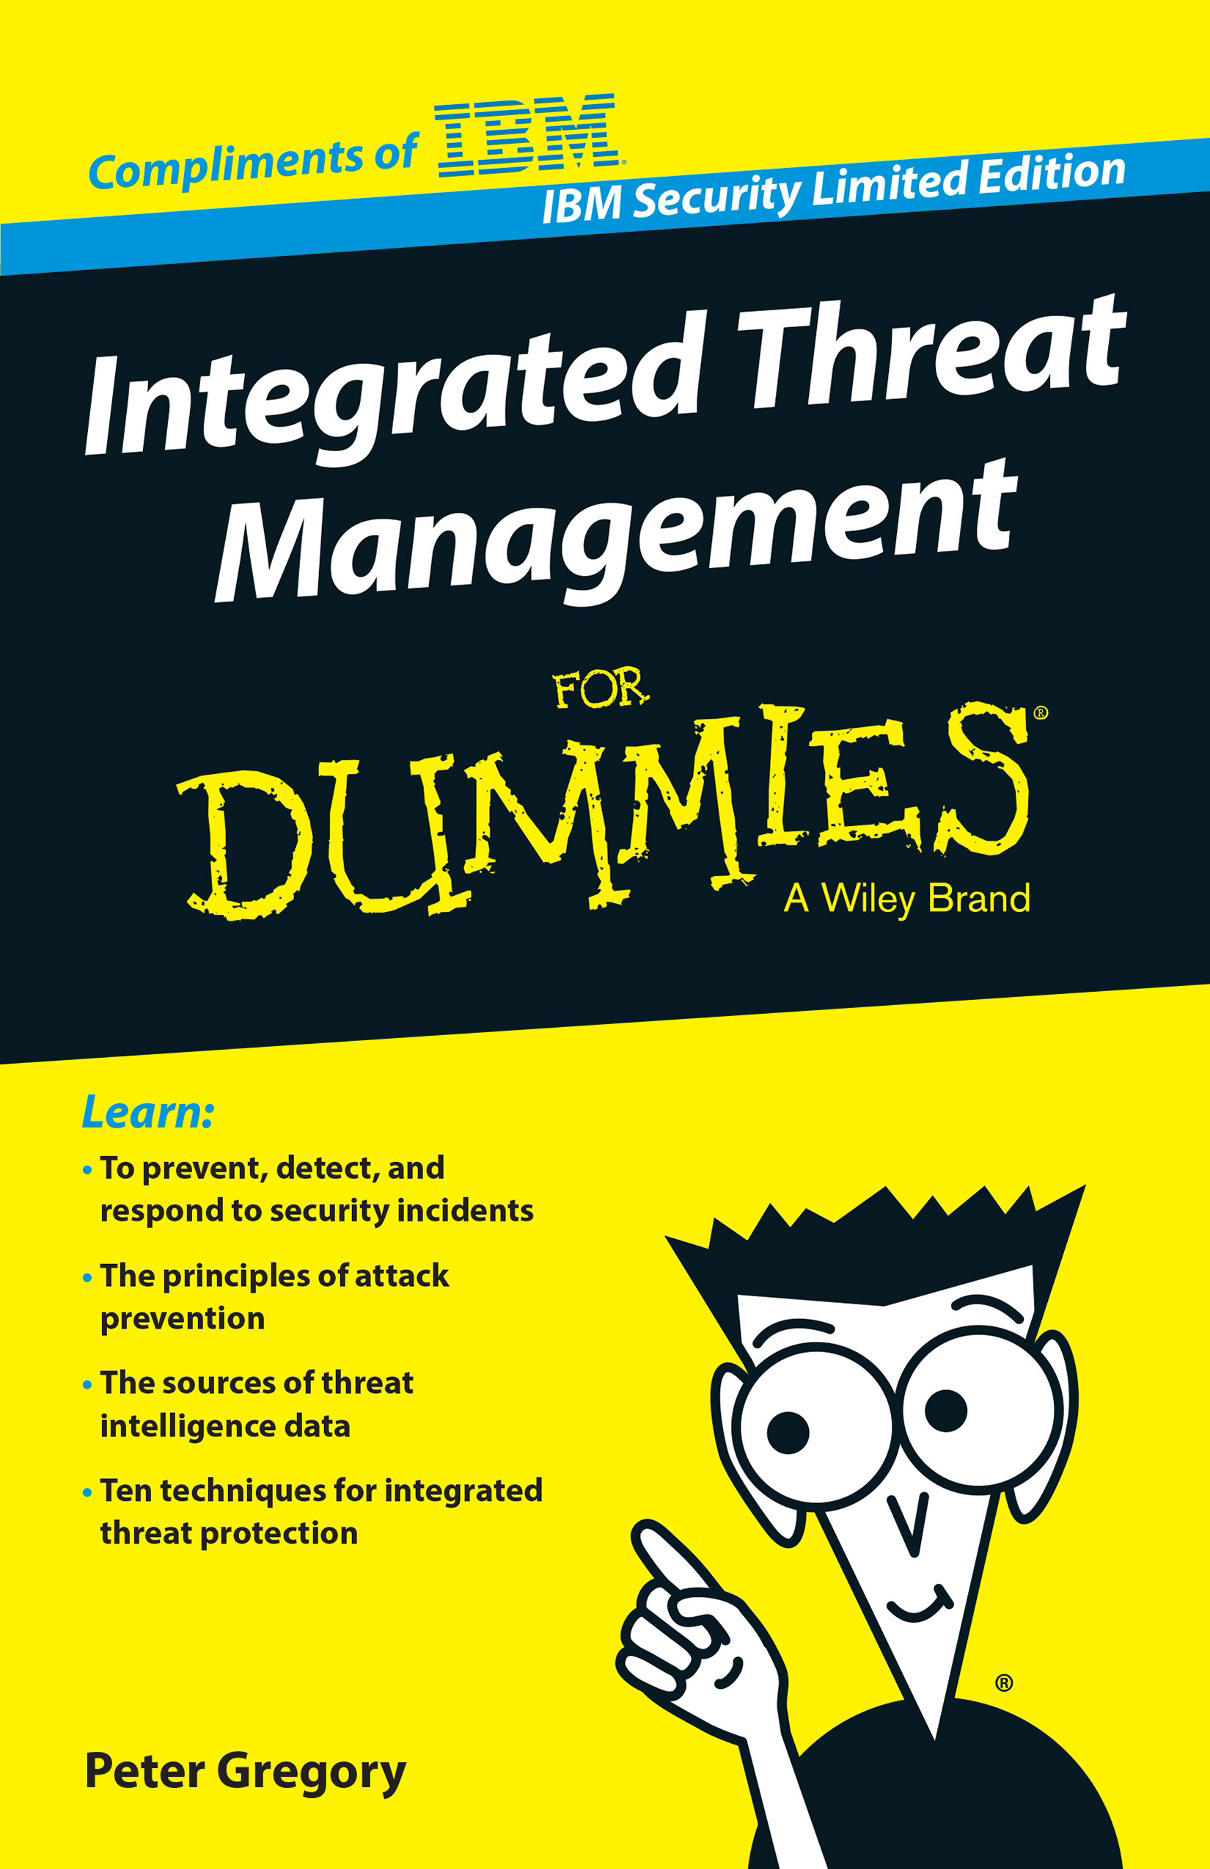 Cover image for Integrated Threat Management for Dummies, from IBM Security